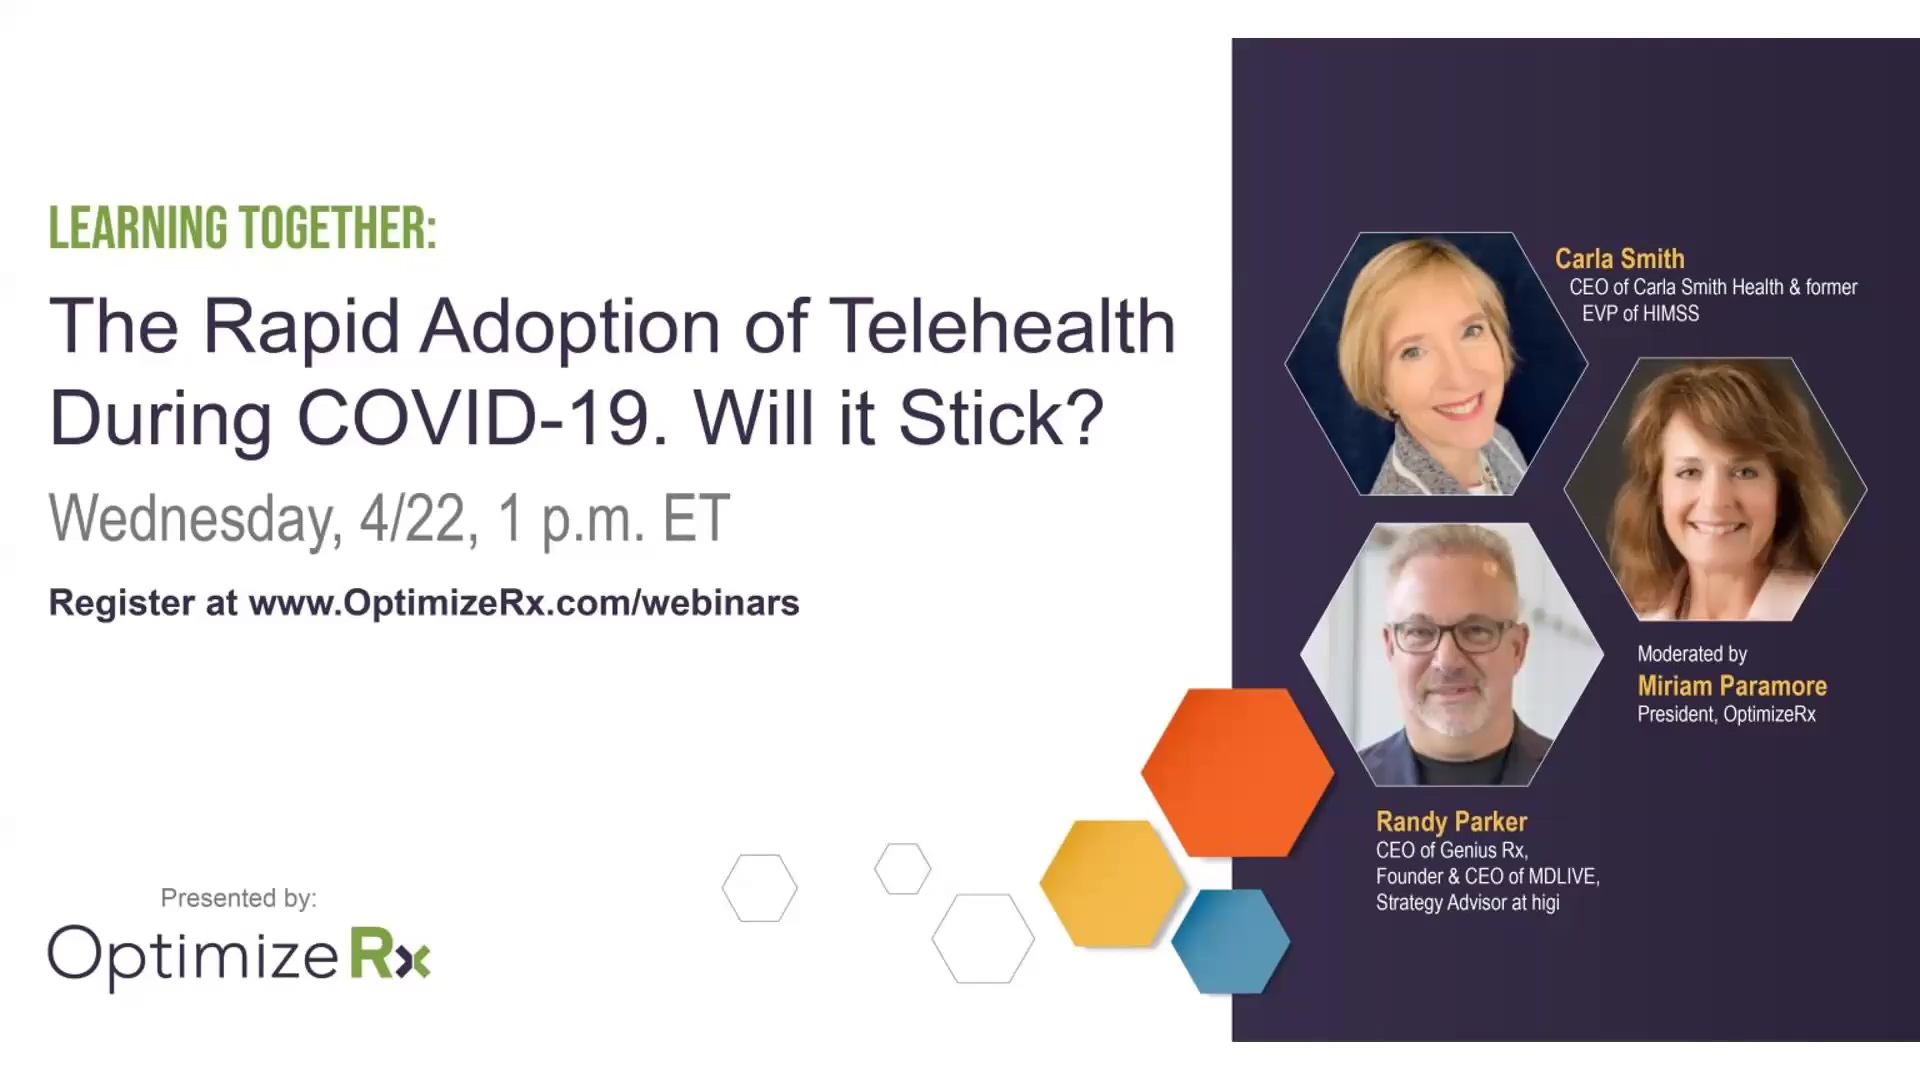 The-Rapid-Adoption-of-Telehealth-During-Covid